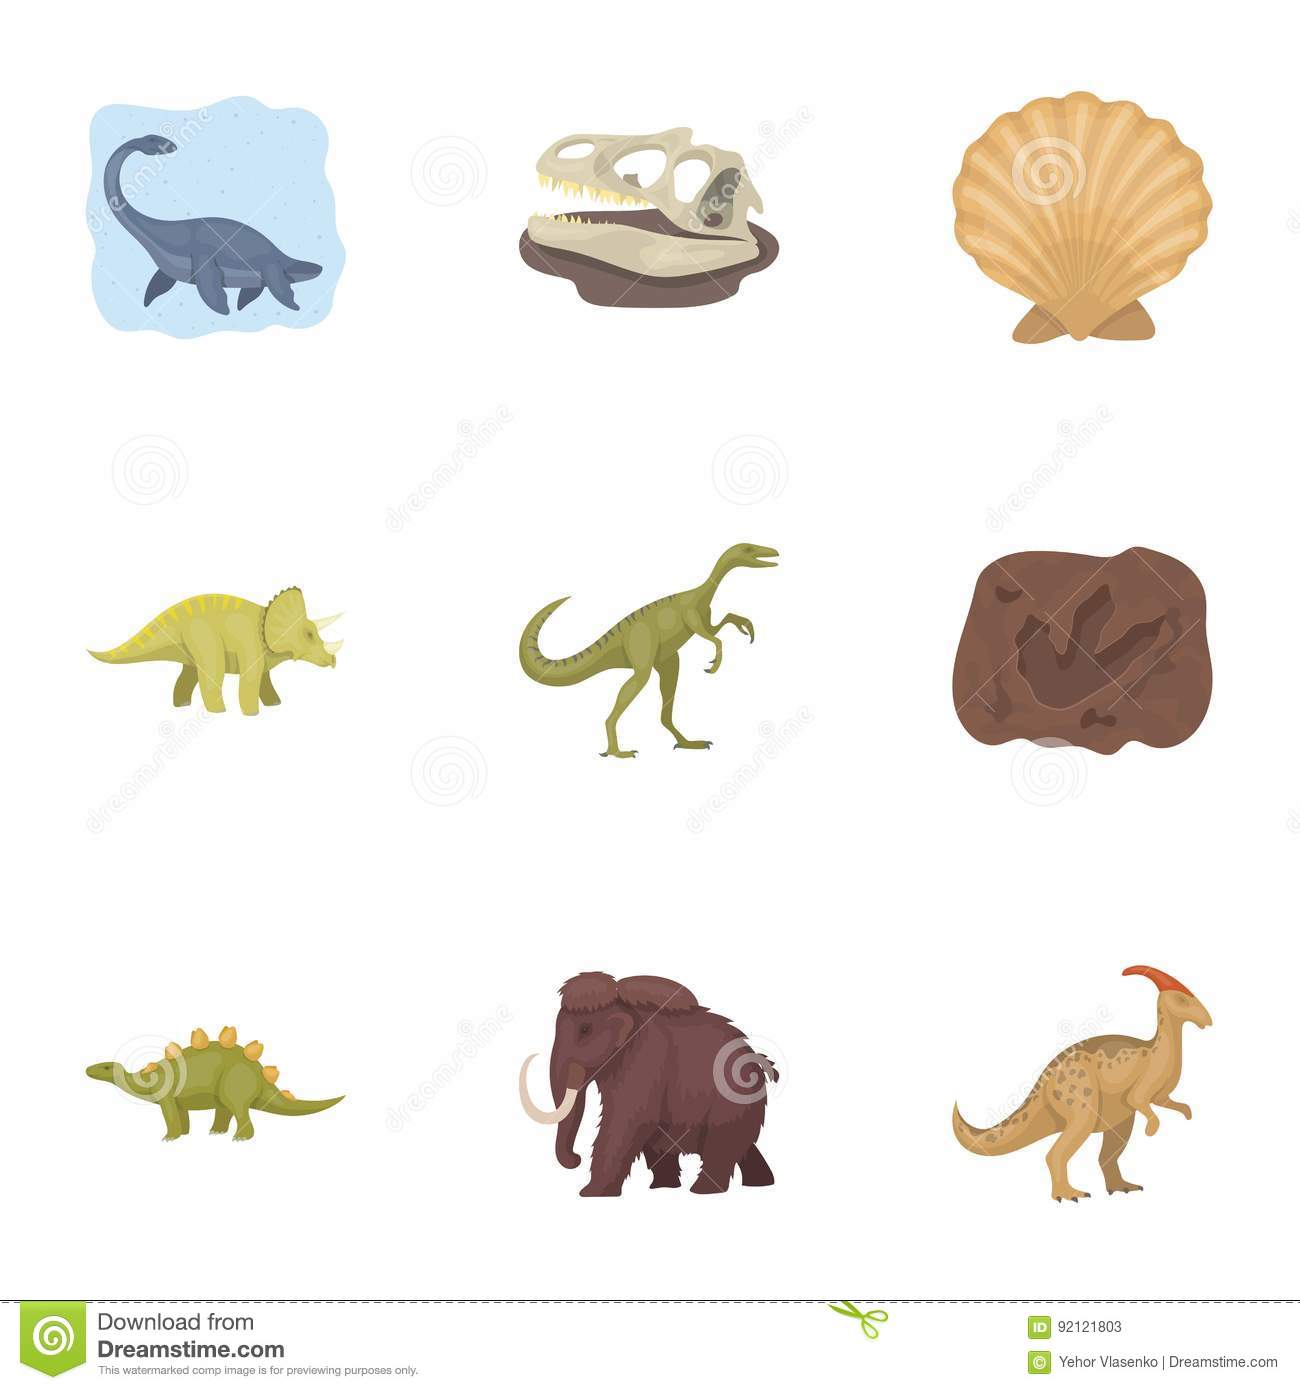 Image of: Ancient Beasts Ancient Extinct Animals And Their Tracks And Remains Dinosaurs Tyrannosaurs Pnictosaursdinisaurs Dreamstimecom Ancient Extinct Animals And Their Tracks And Remains Dinosaurs